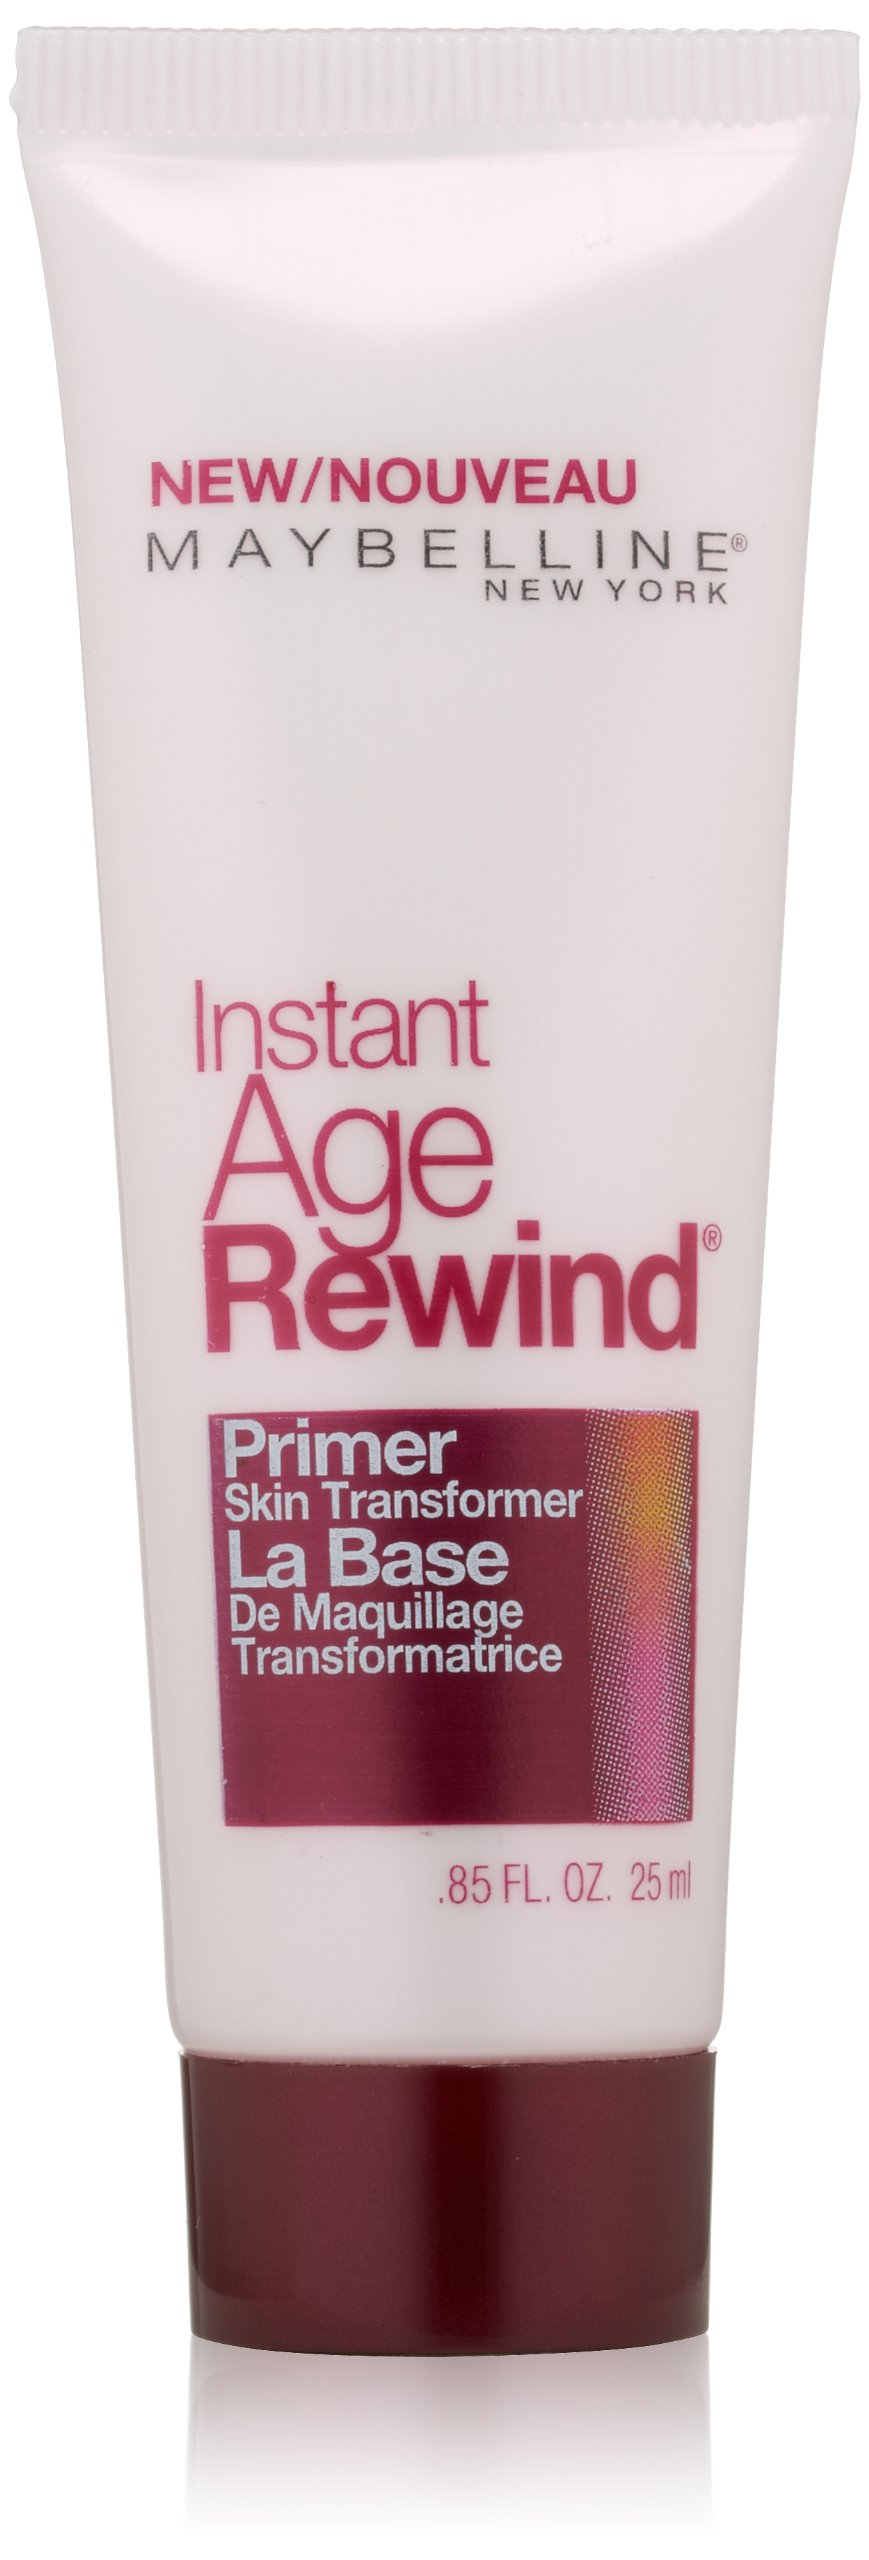 maybelline age rewind primer review